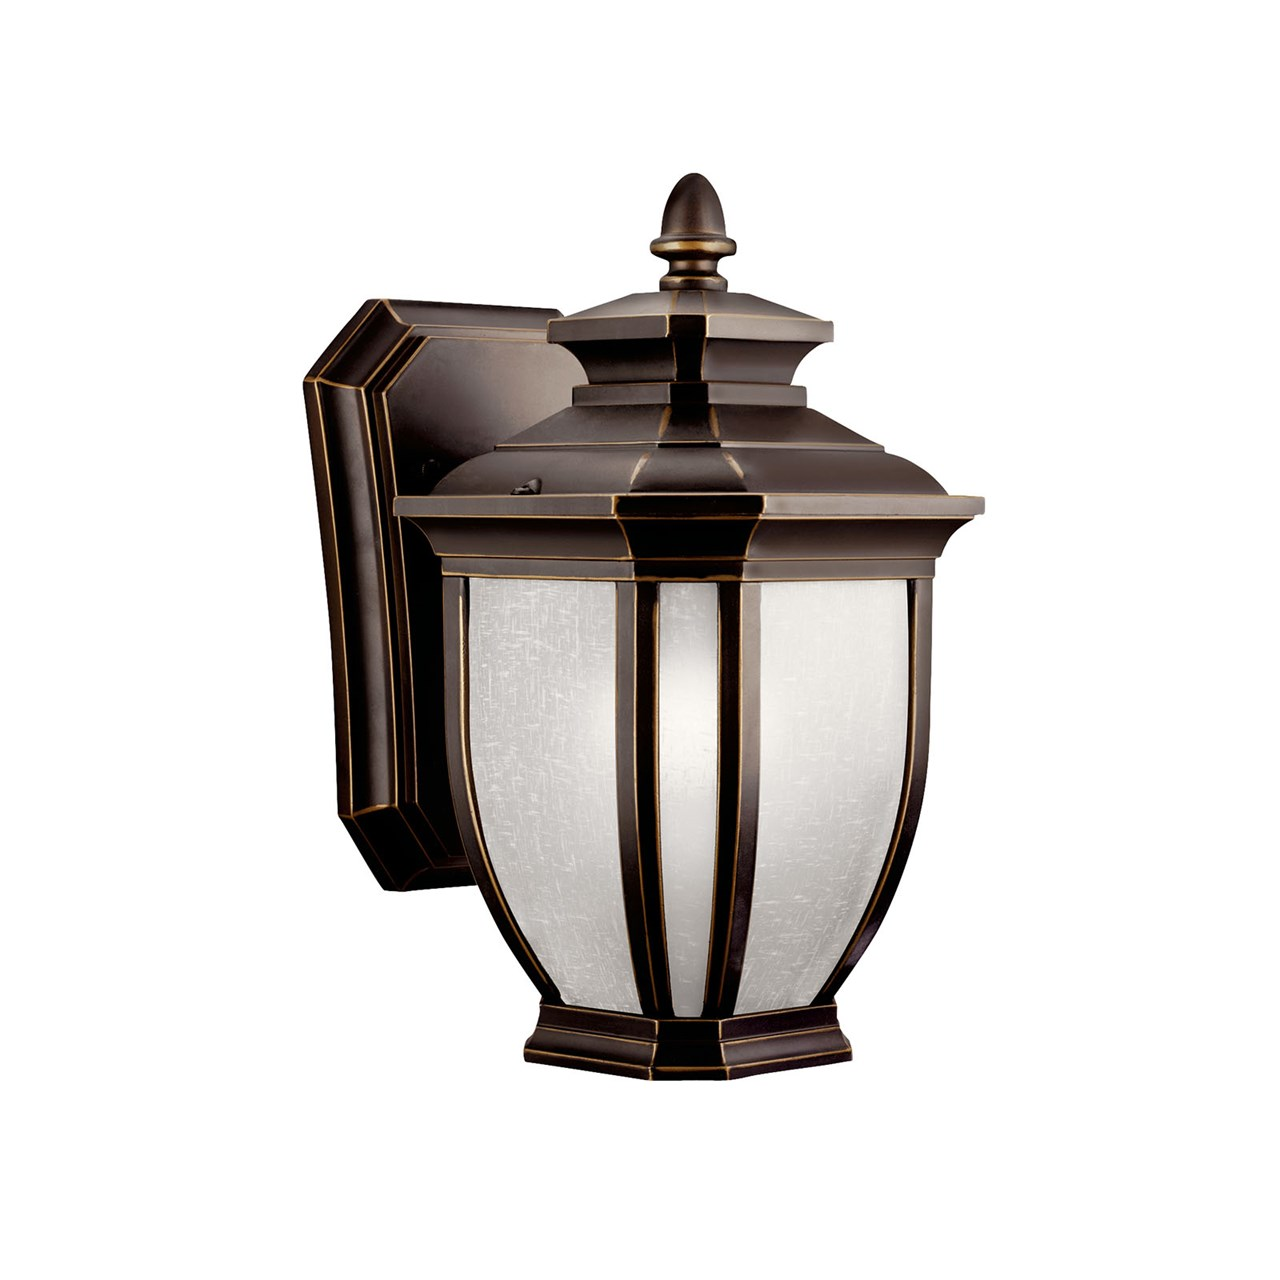 Salisbury 10 25 1 light wall light rubbed bronze